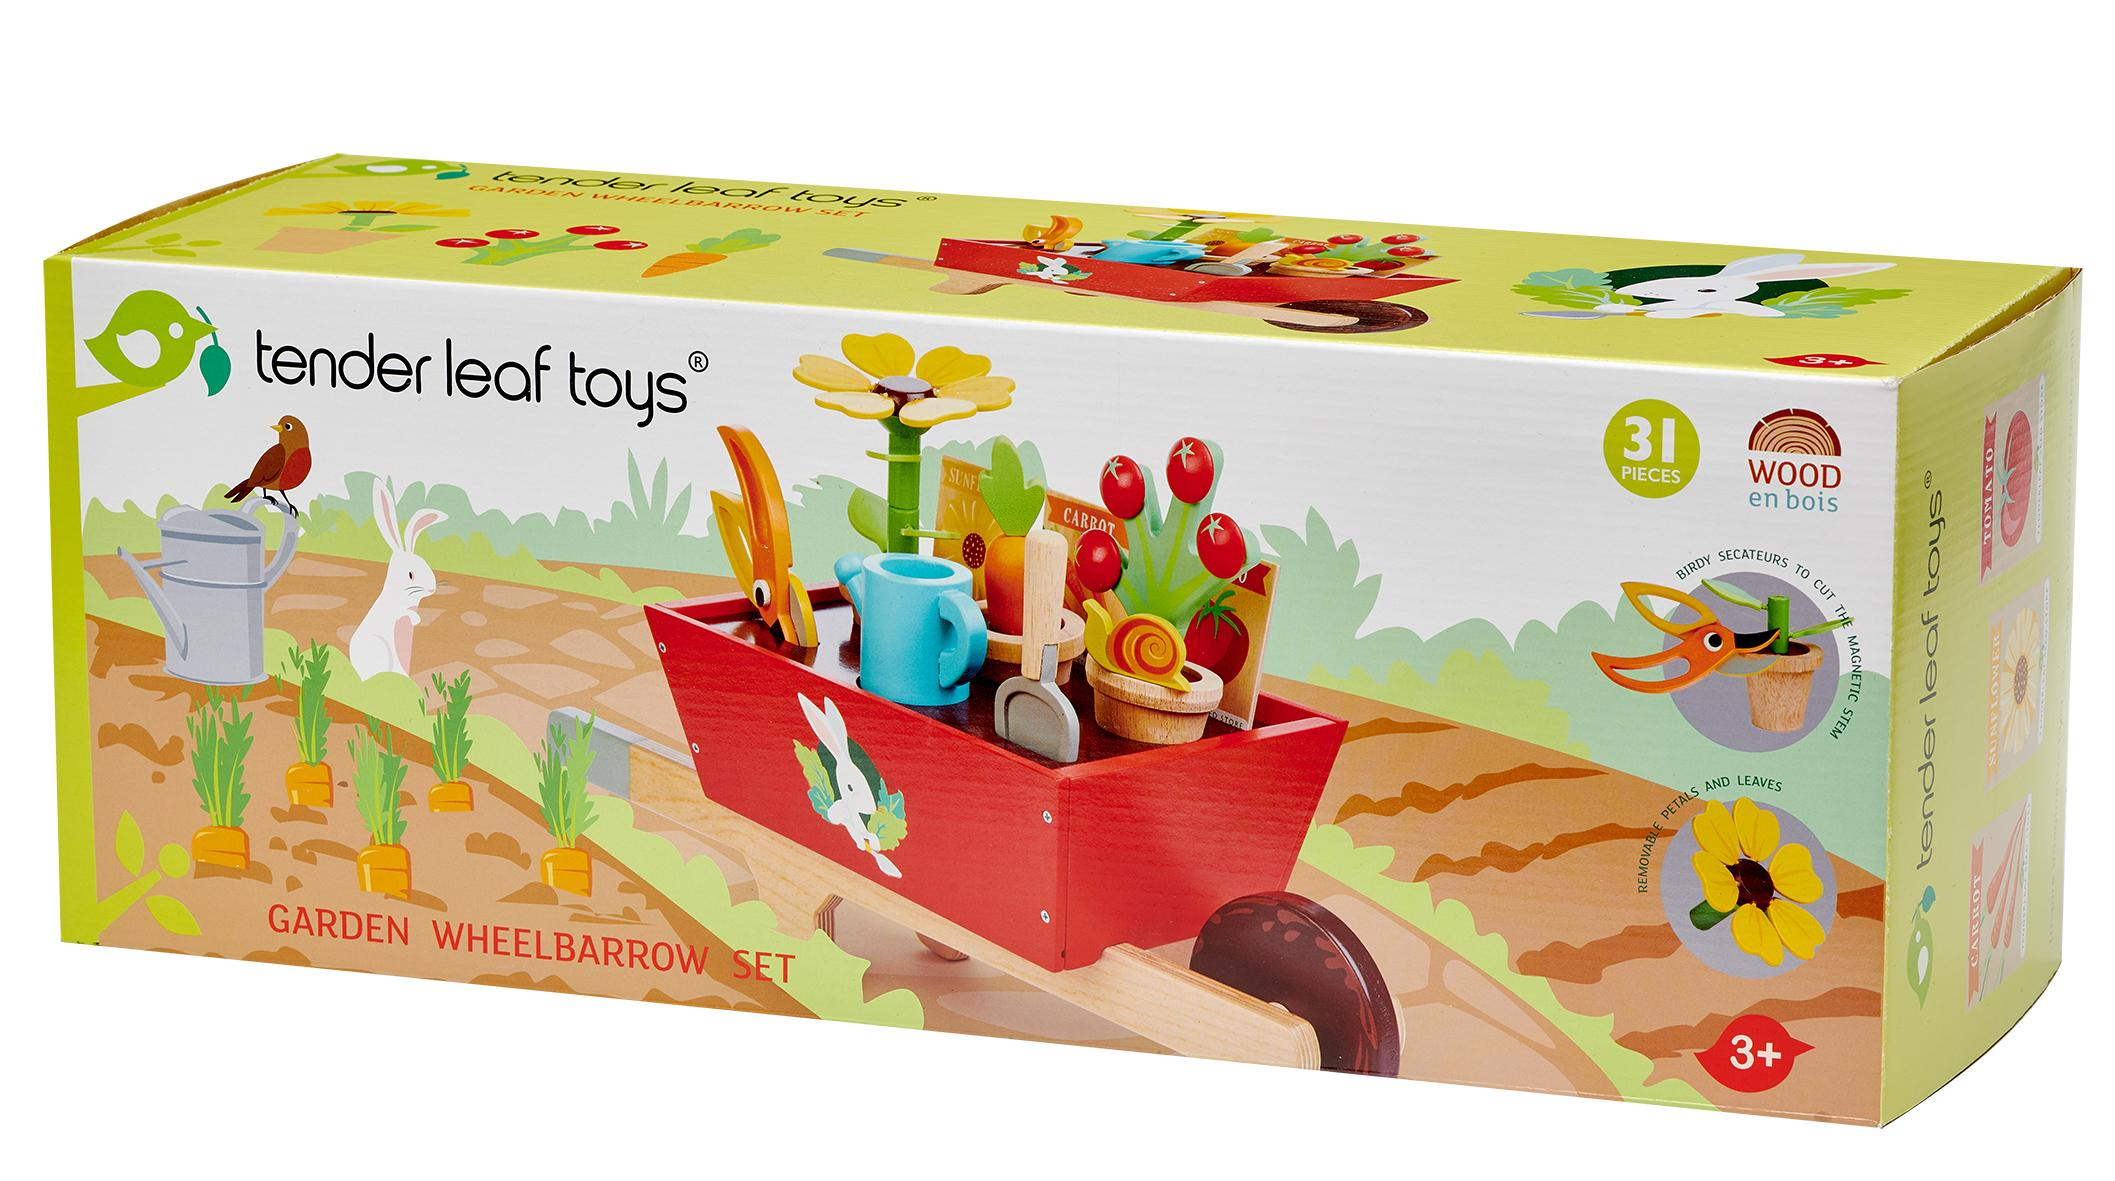 New Wooden Toy Wheelbarrow Set with Removeable Plants, Tools and more #3